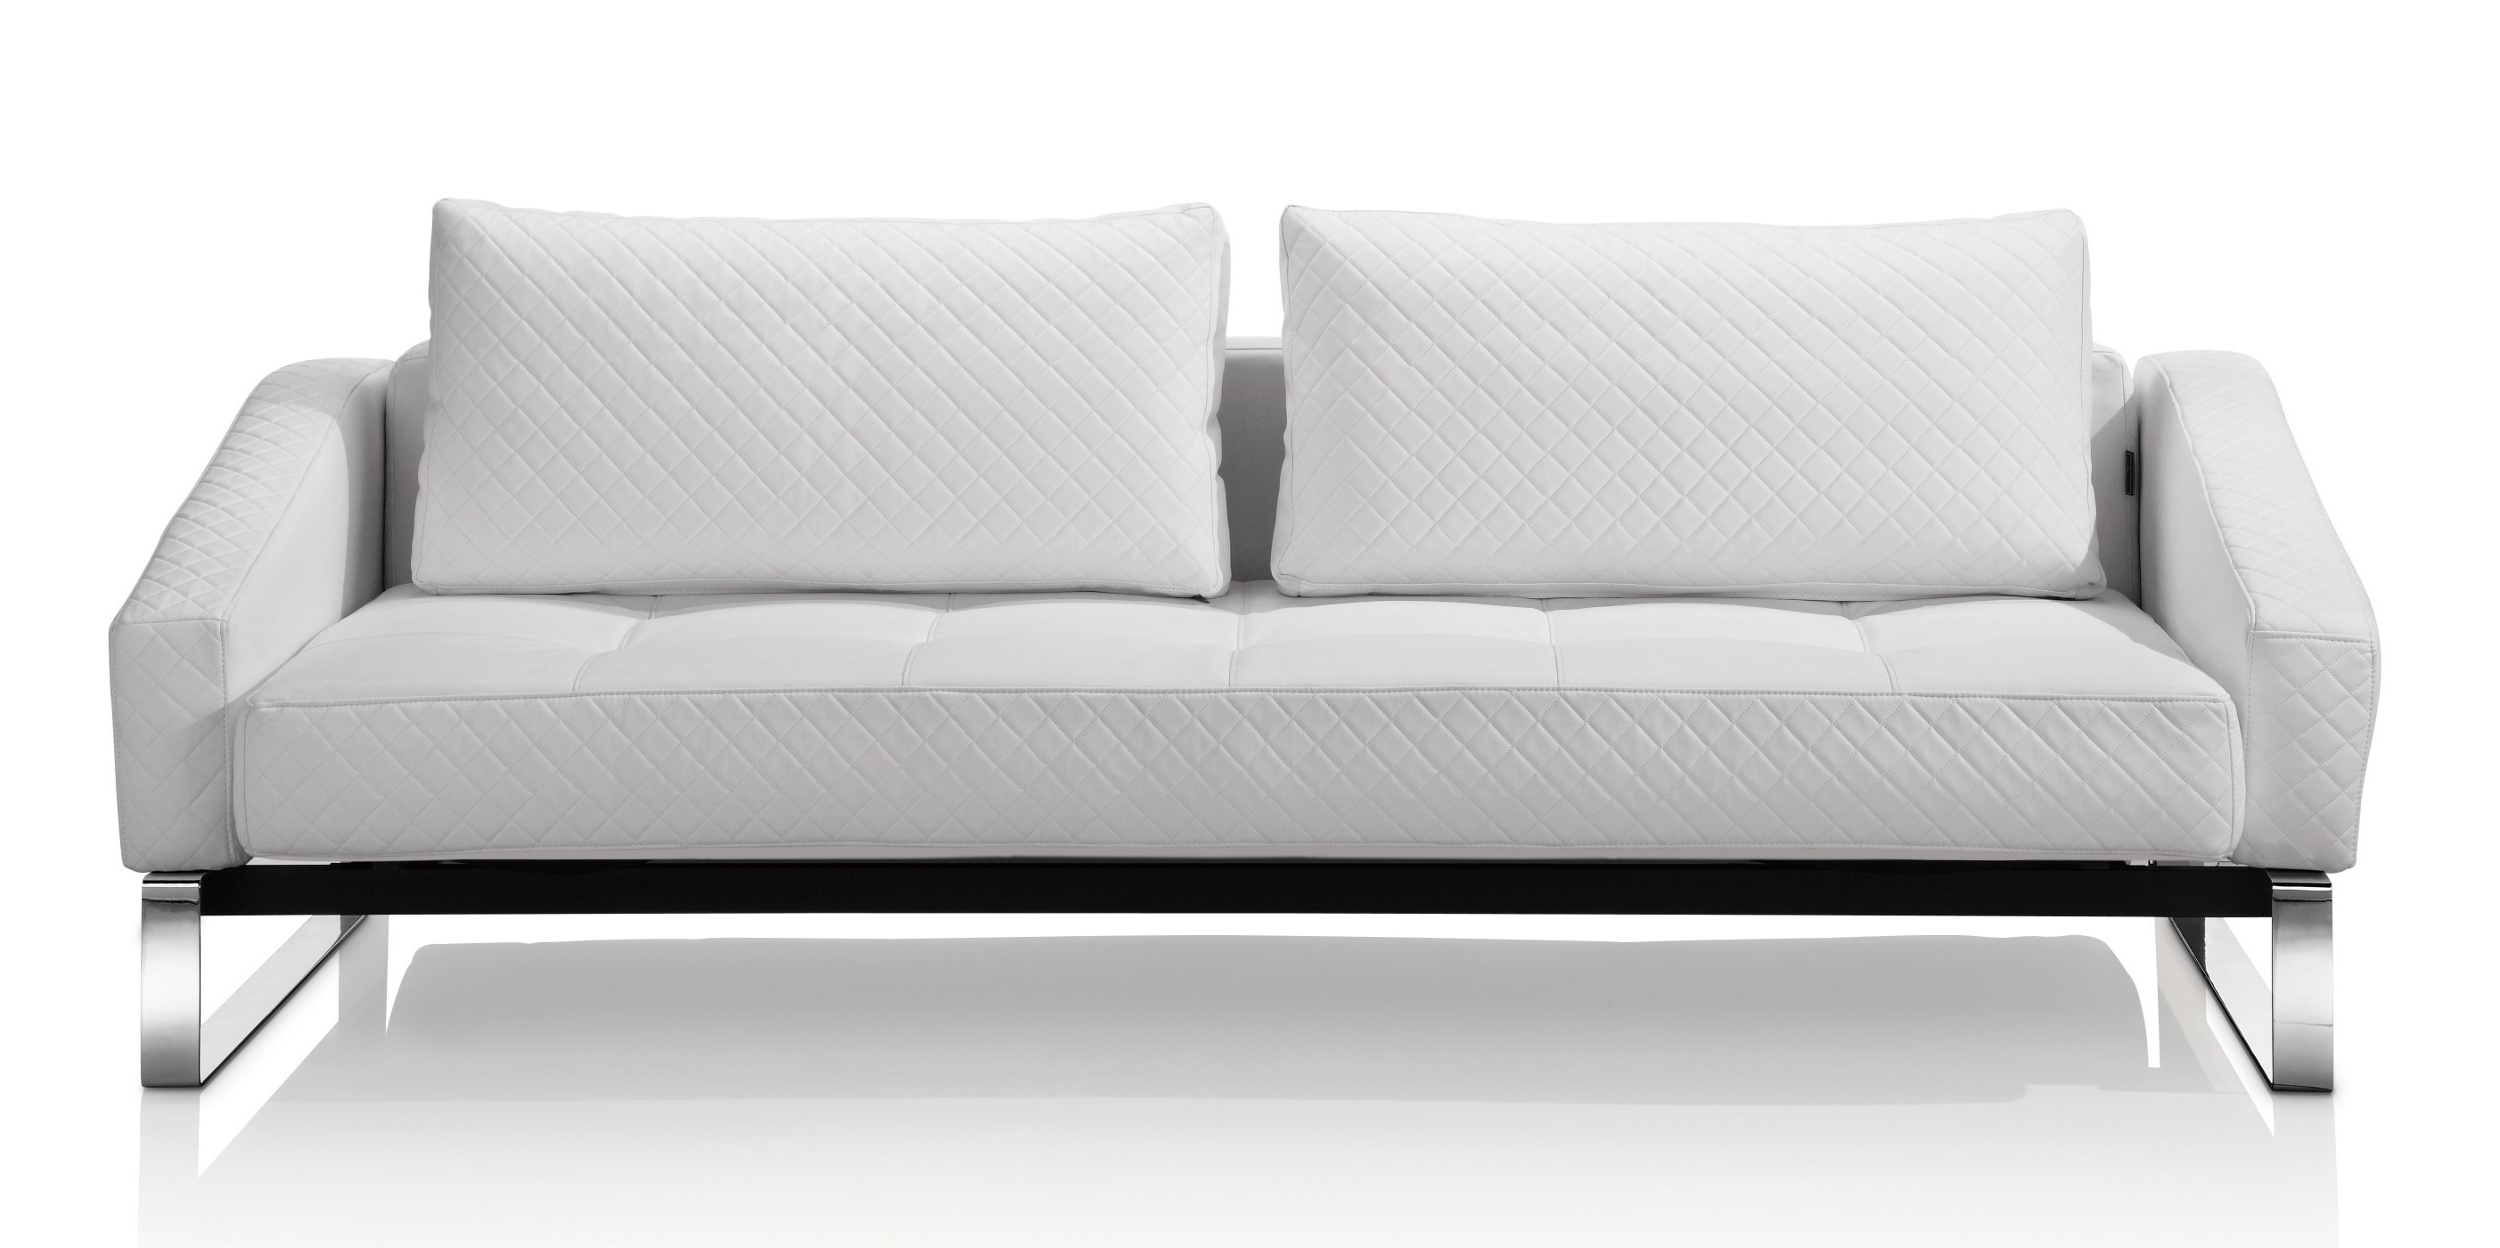 Famous Leather Sofa Modern Sleeper Wonderful Cado Furniture Watson Intended For Contemporary Sofa Chairs (View 11 of 20)